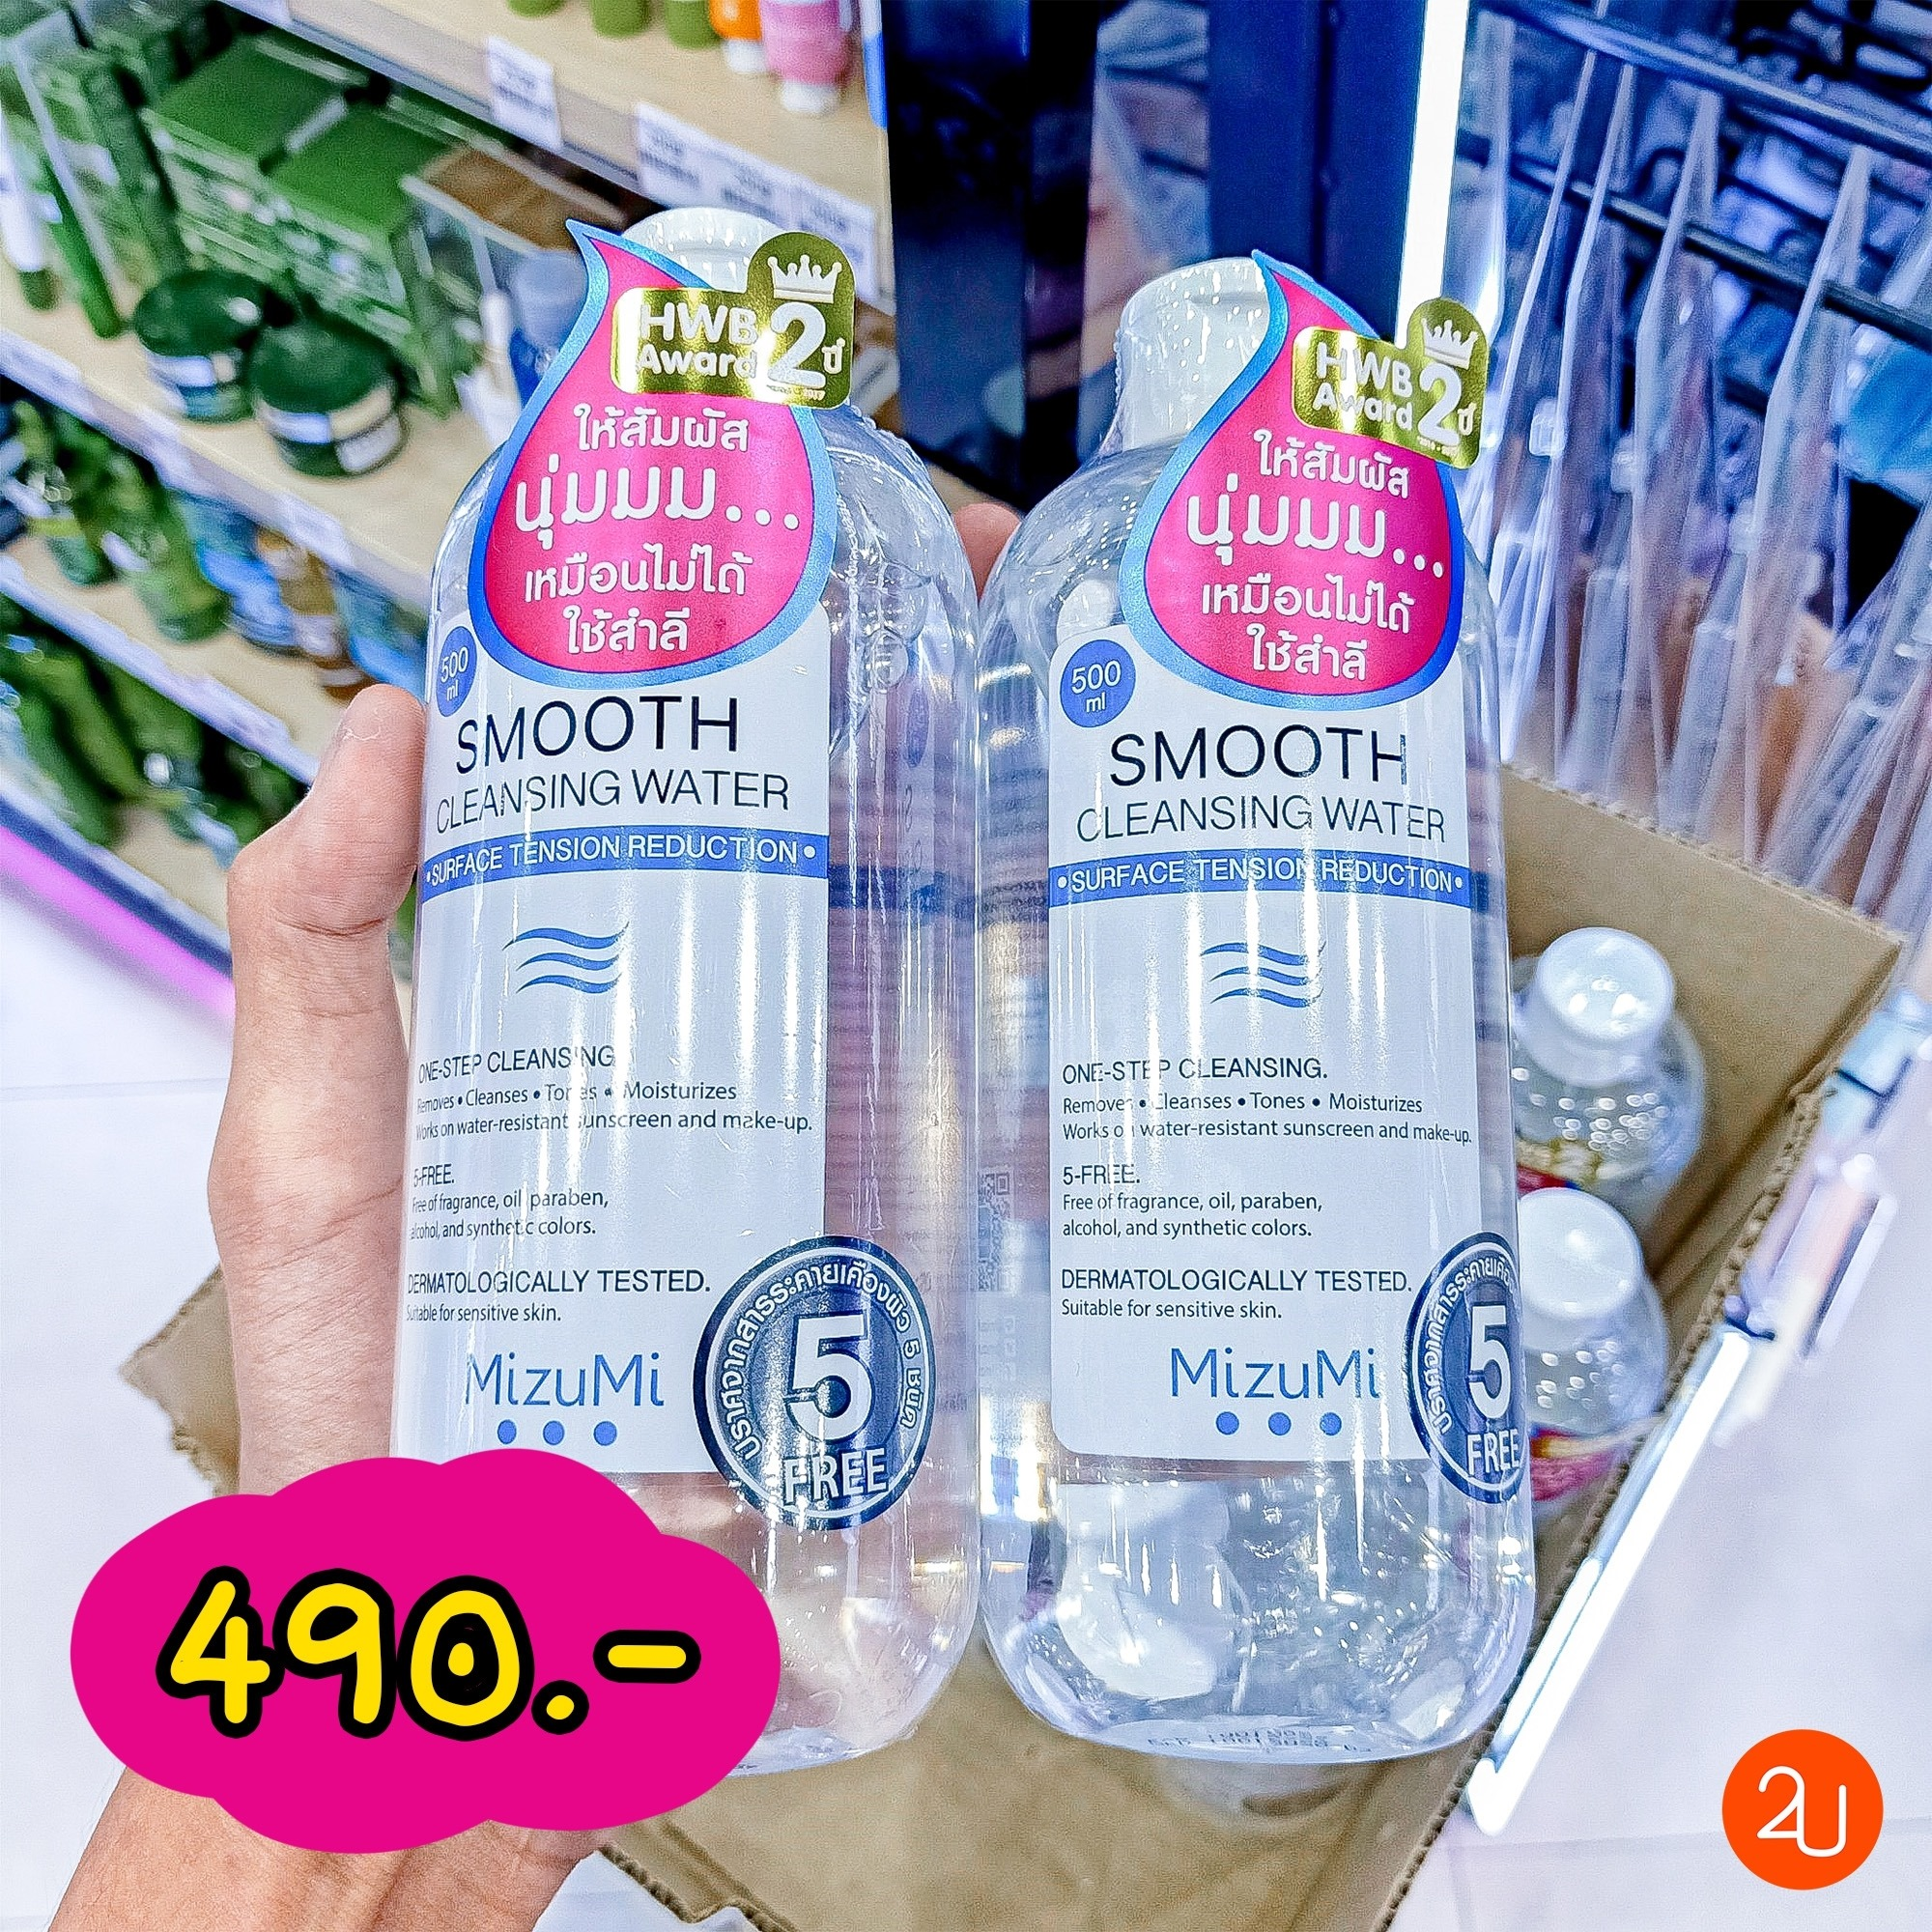 Smooth Cleansing Water